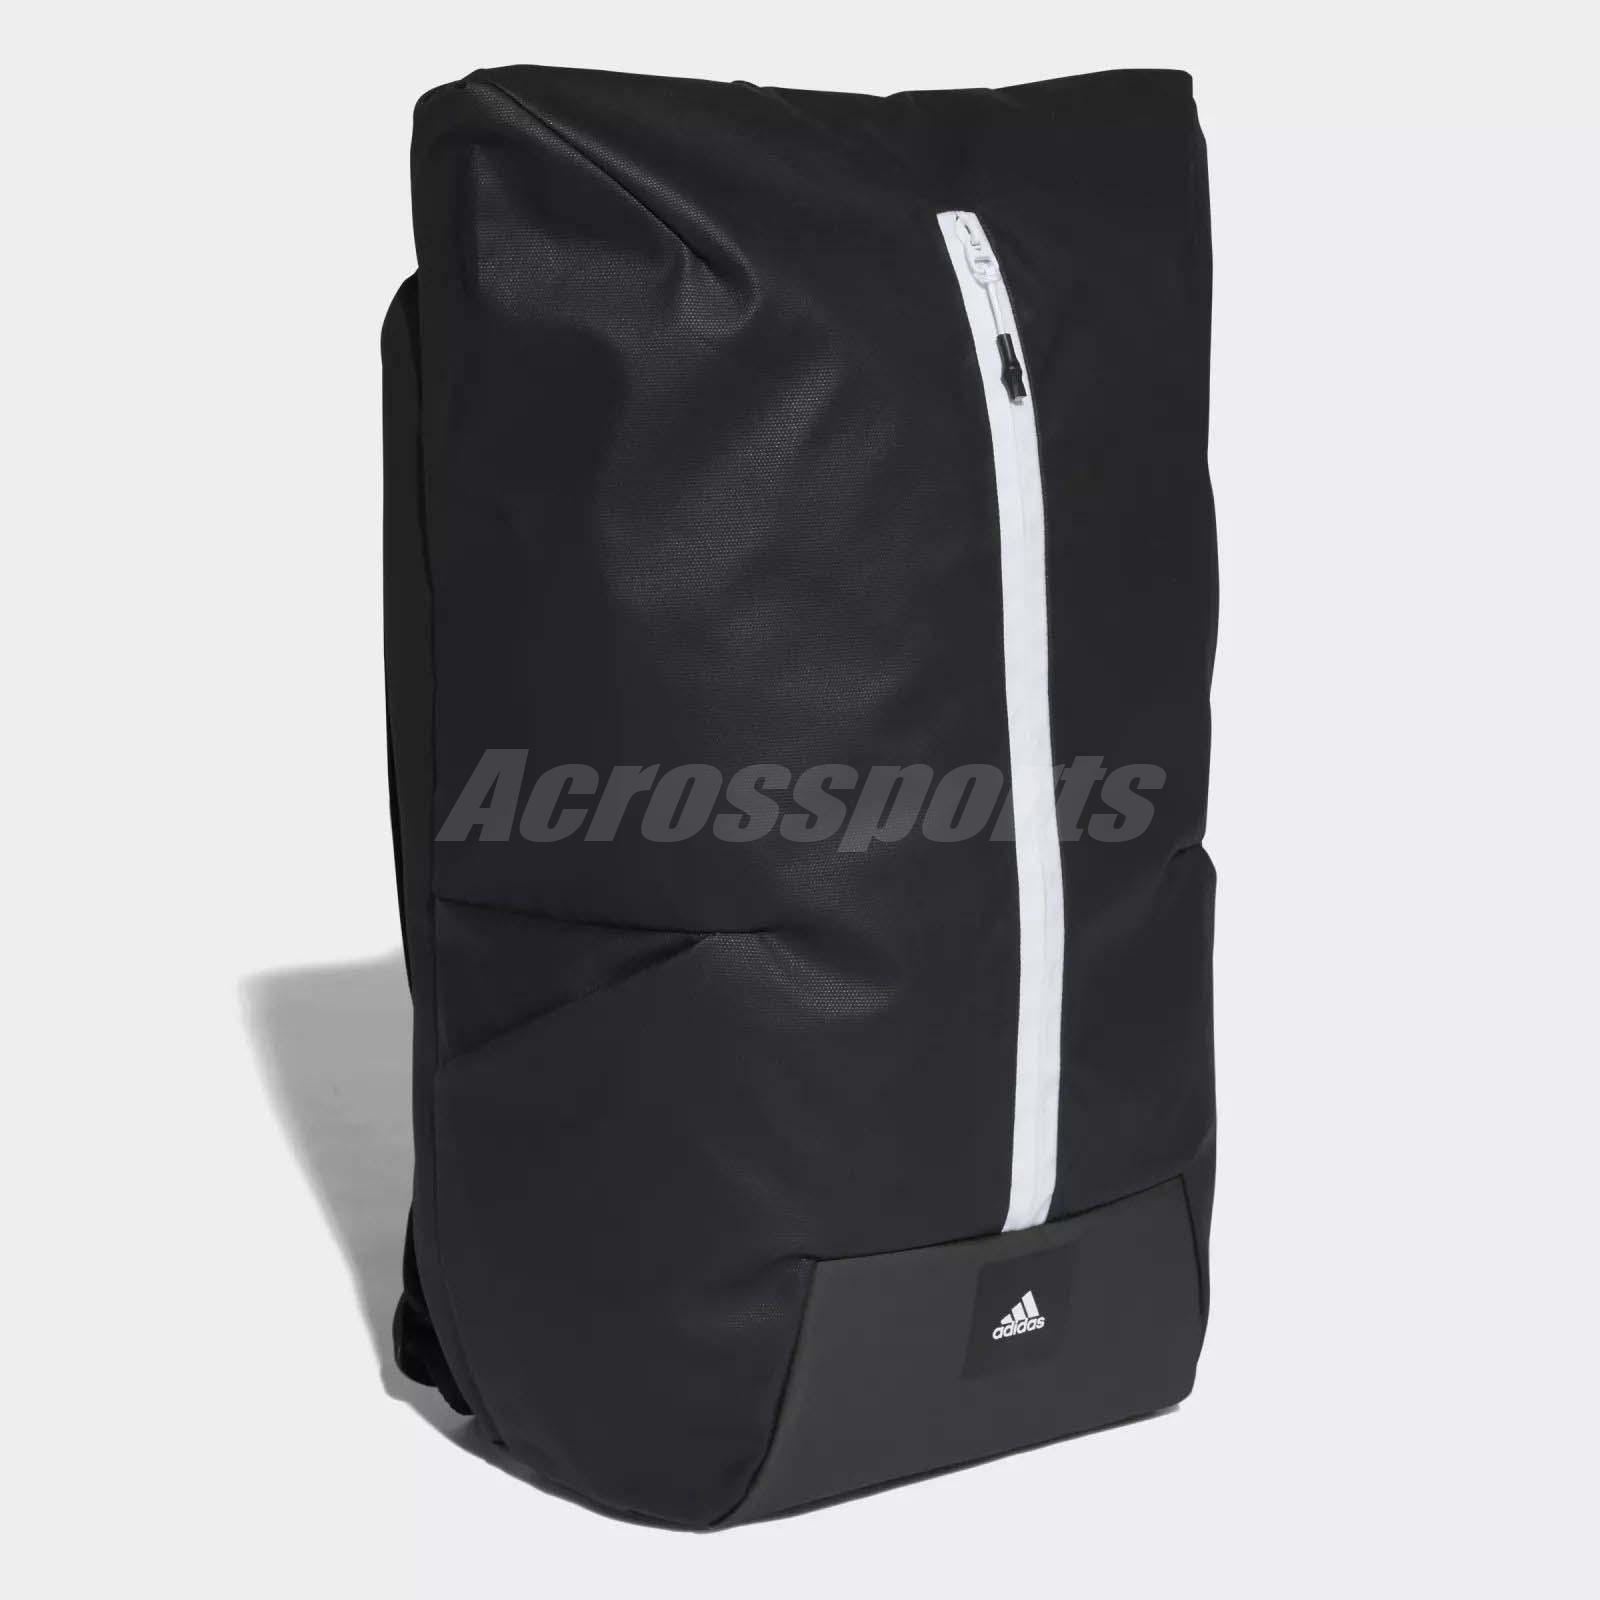 8f2772842c07 adidas Z.N.E. Backpack Workout Training Fitness Sports Bucket Bag ...